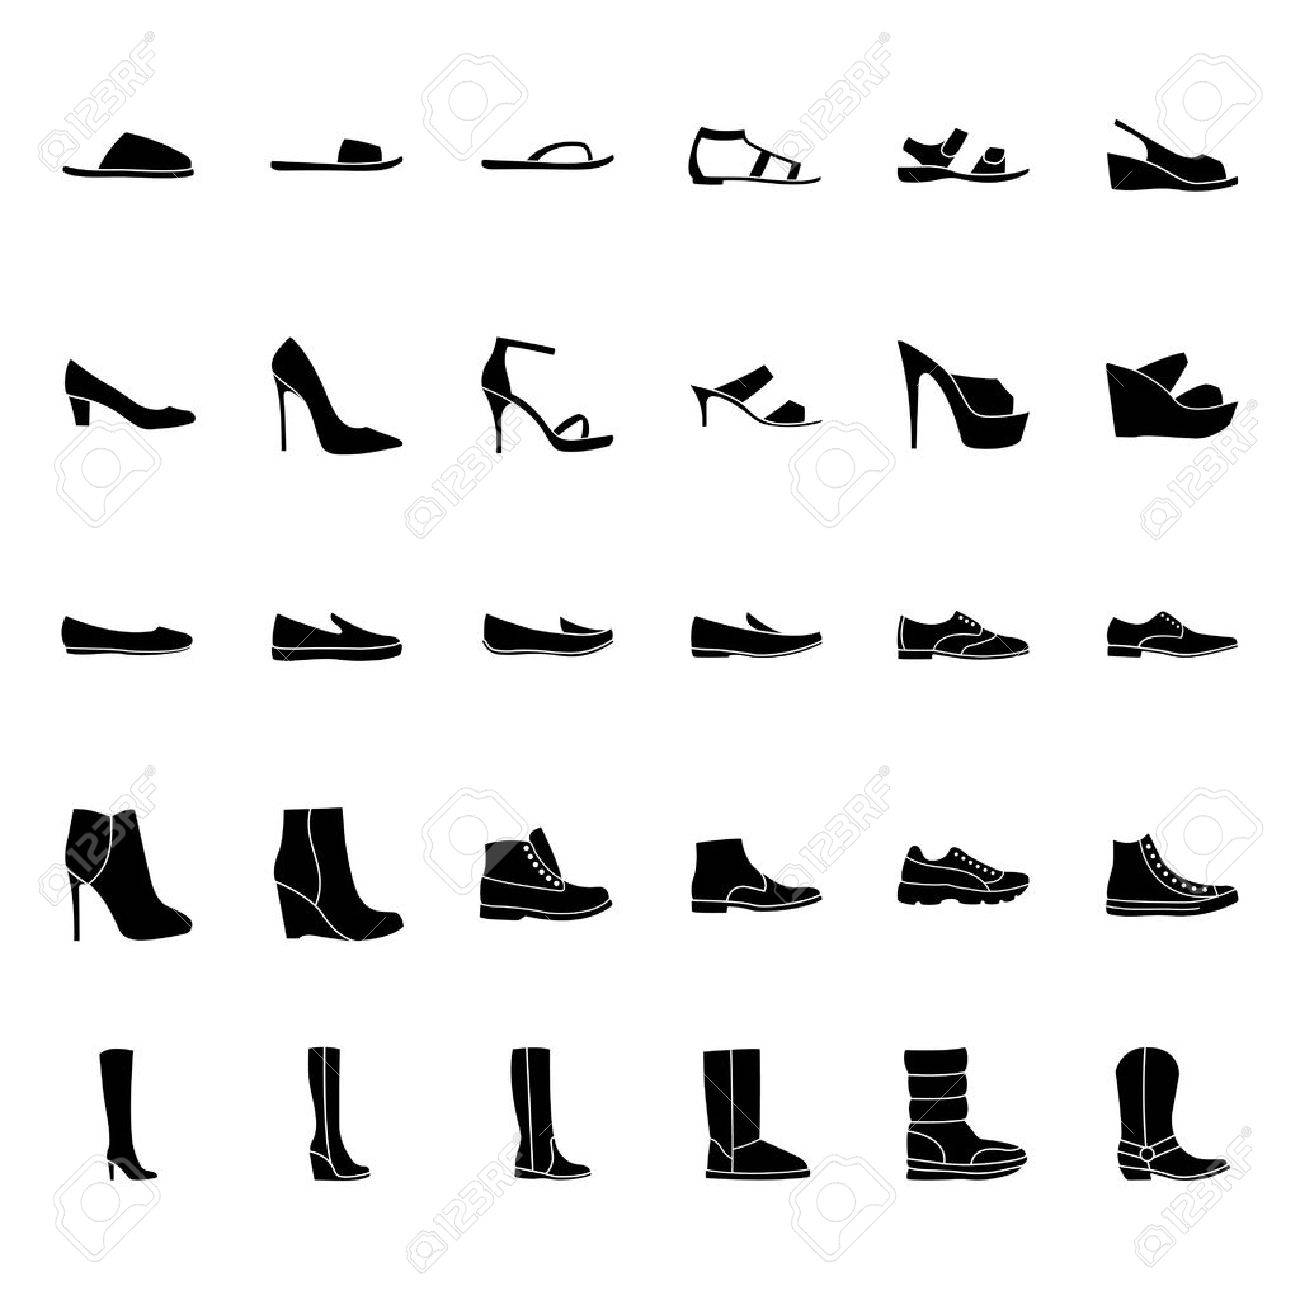 Set of men's and women's shoes icons, black silhouette - 53075608